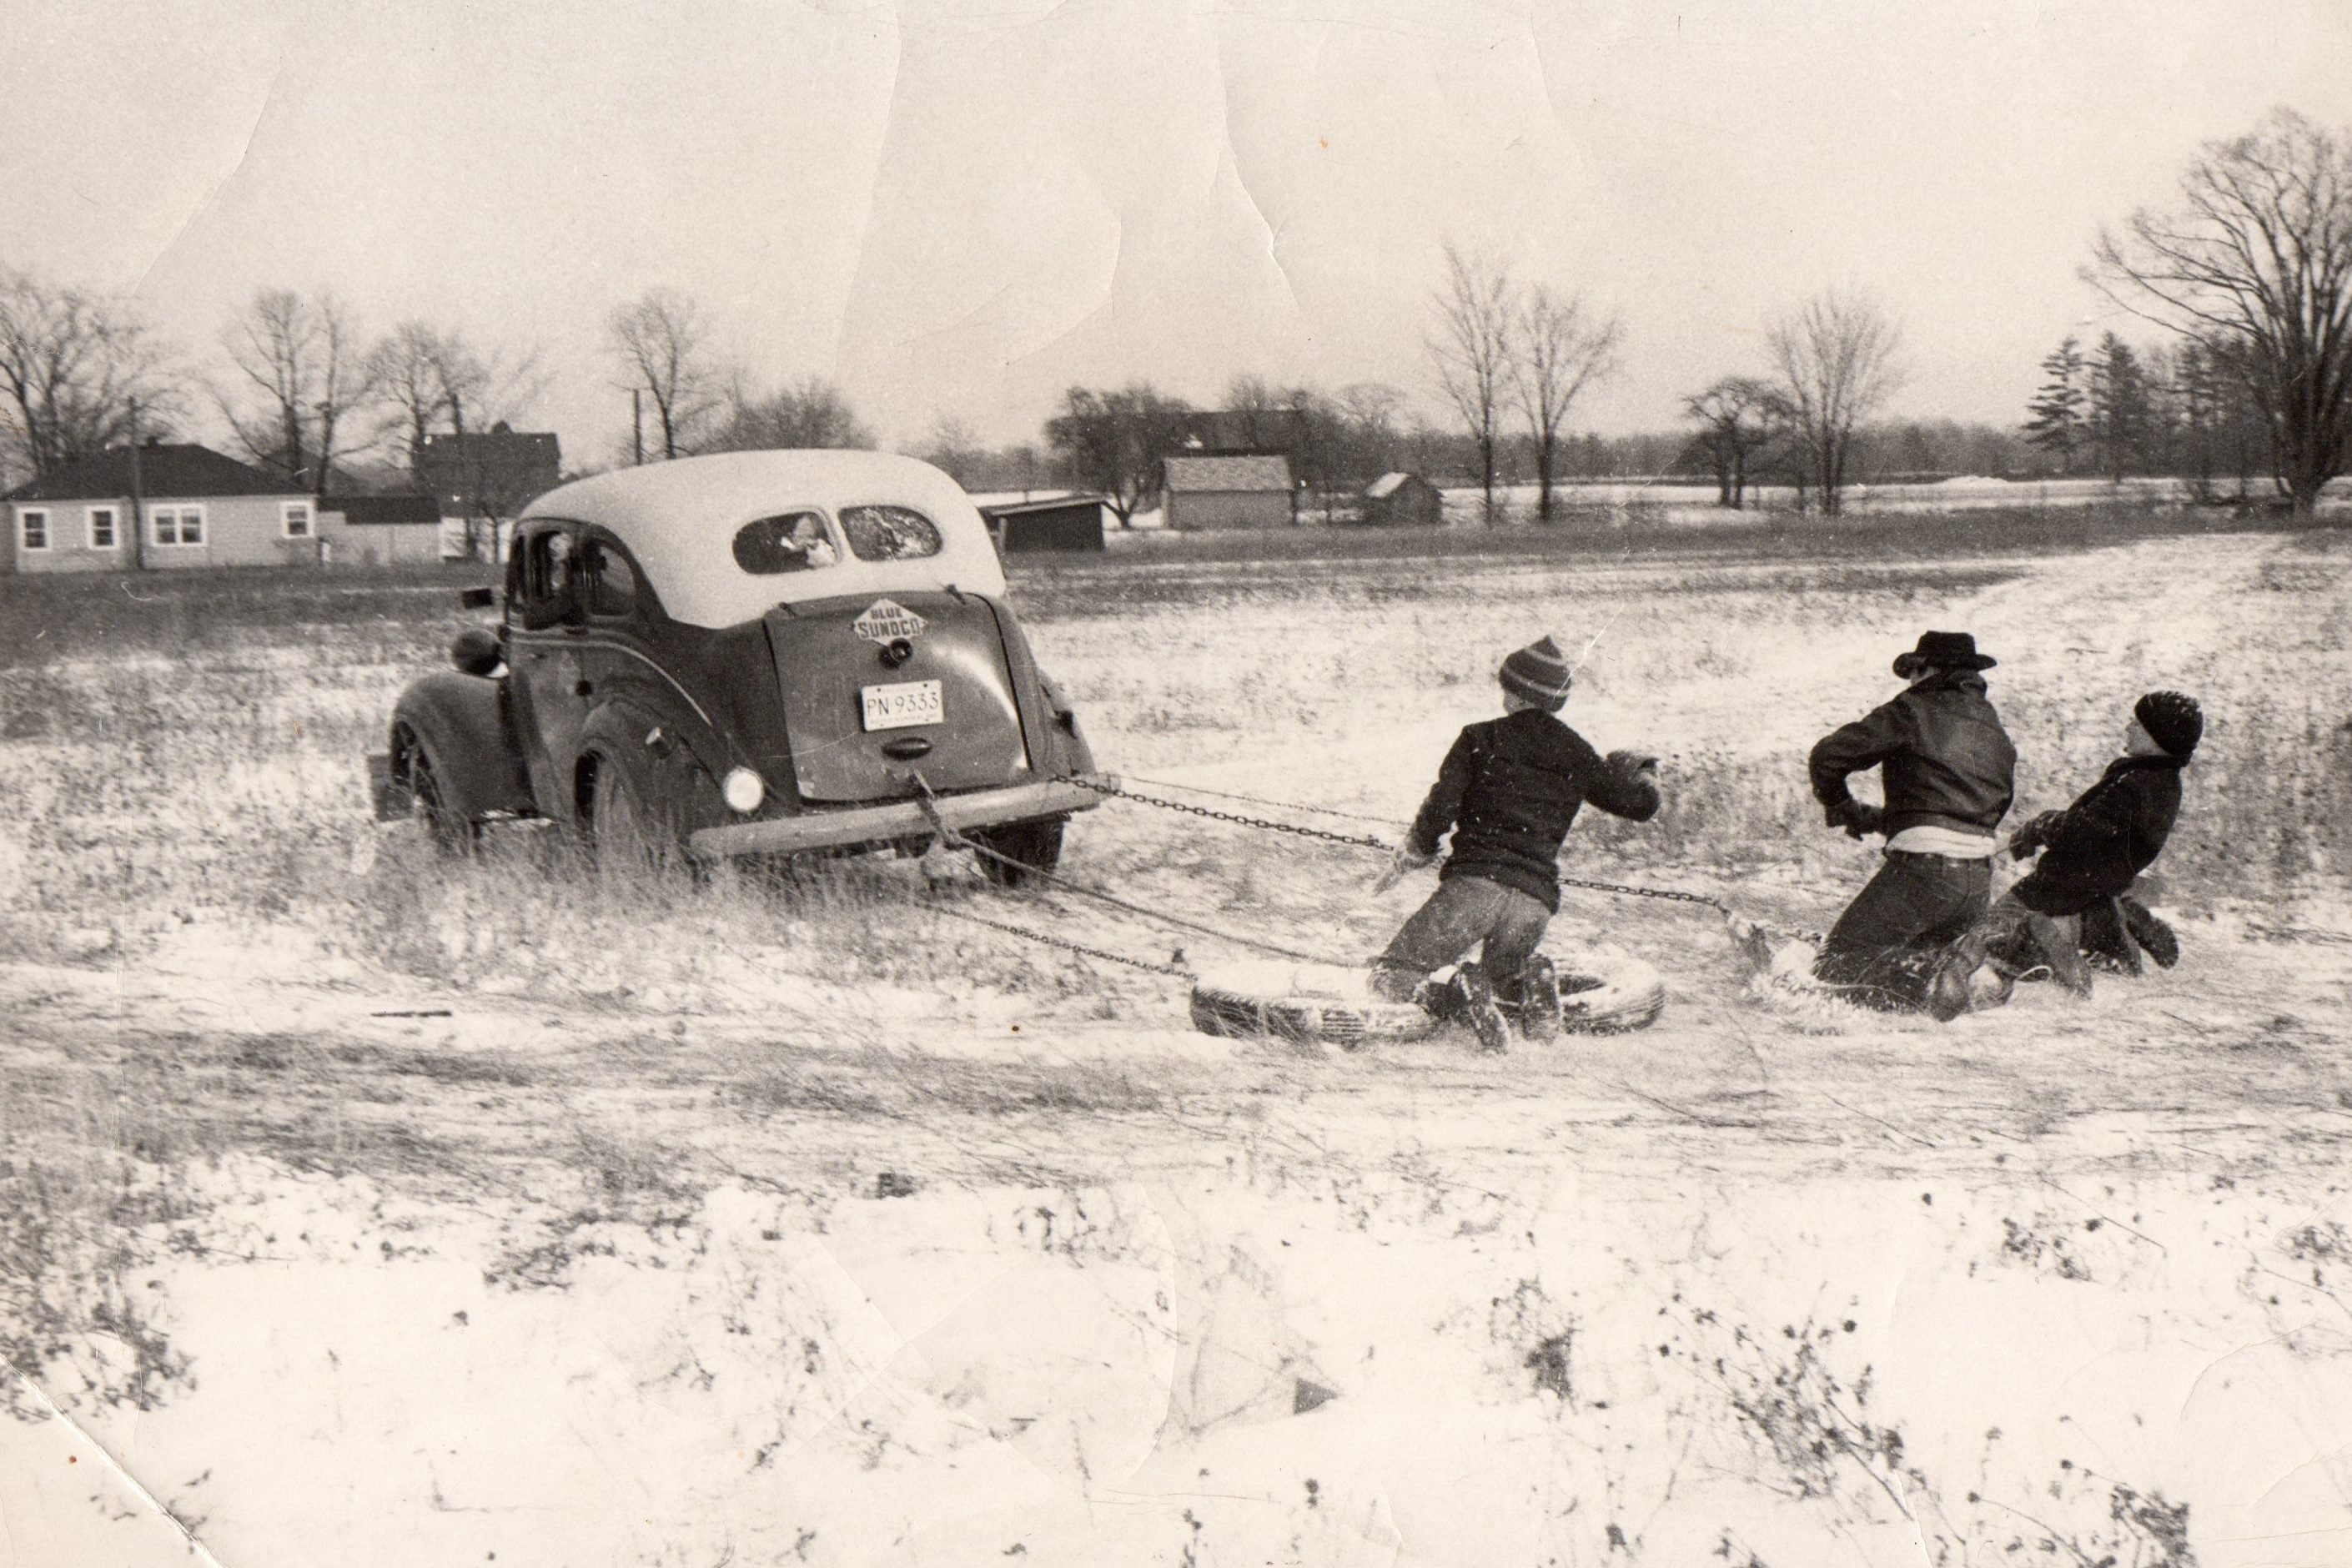 This scene takes place in Goodells; MI. about 1958. The car belonged to my father; Sandy Sanderson. He used the 1937 Dodge with a floor shift as a service car for his gas station (note the large front wooden bumper) to push-start cars. He was inspired to let any of the neighbor kids learn to drive in the field by using his service auto. Most of us learned to drive by 12 to 16 yrs. The object in the winter-the driver was to try to dump anyone riding. When you got cold; places were changed with someone inside the car. The person in the middle was Don Schattler (now deceased) the other two are the Polivich brothers. We drove the car in the field next to my fathers gas station; the tires we rode on; ropes; and chains were furnished by him.